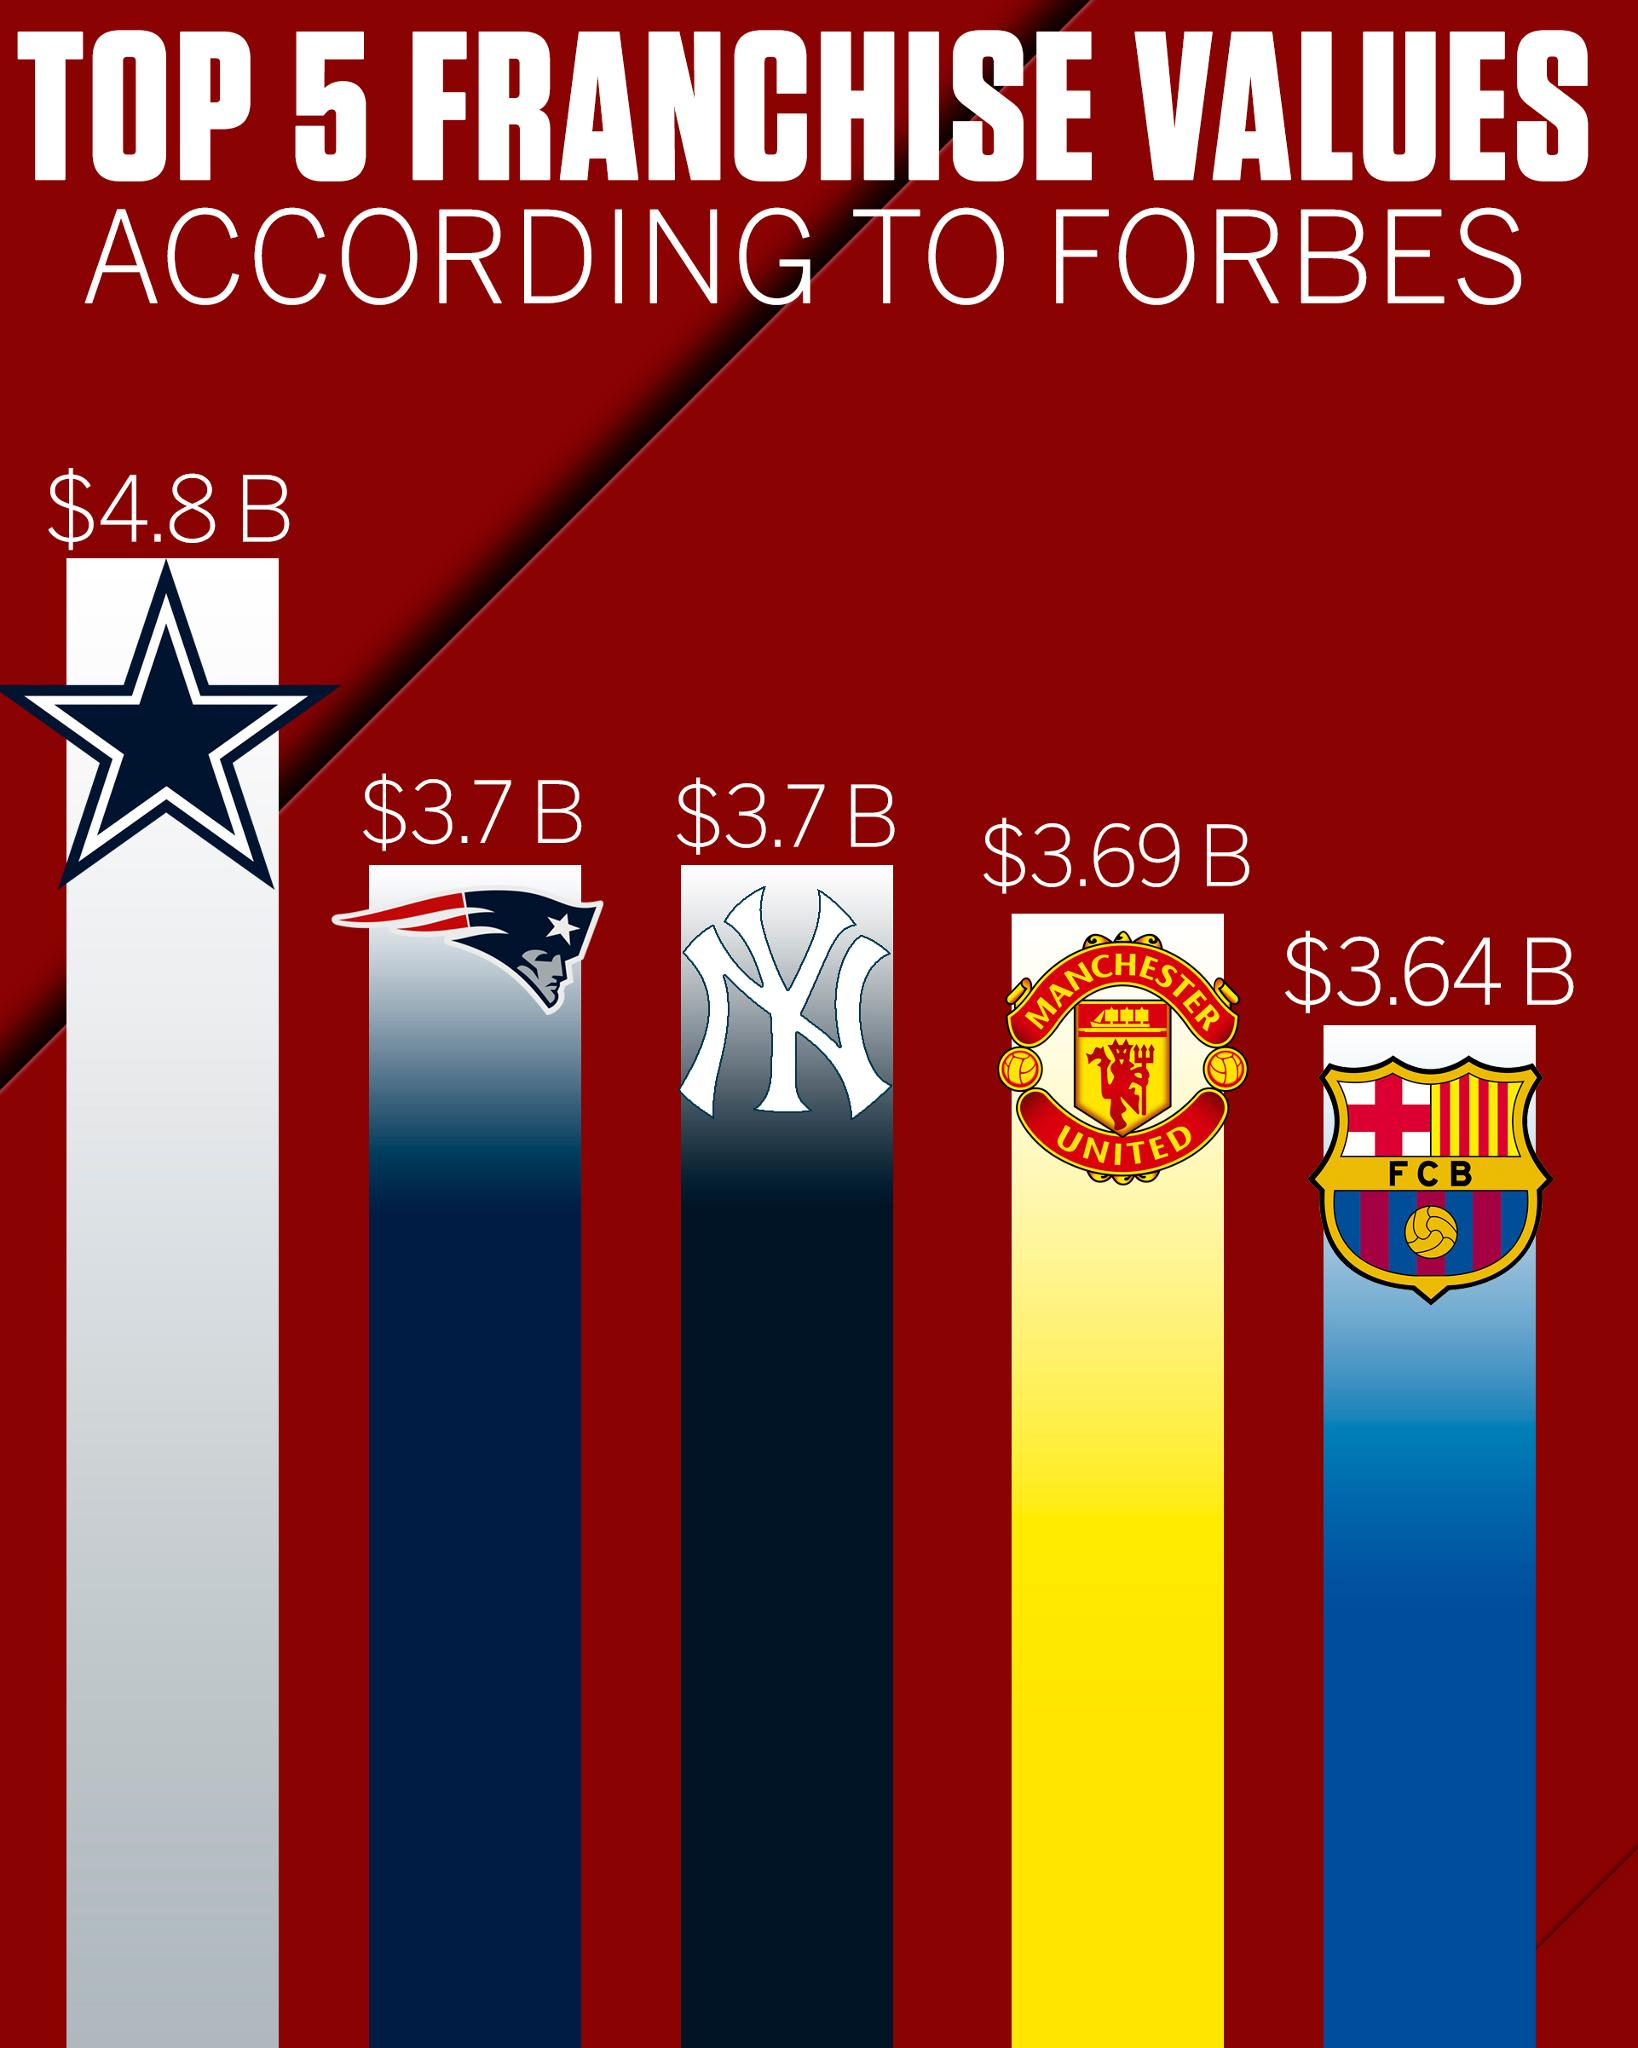 The Cowboys are over $1 billion more valuable than the next teams on the list. https://t.co/JlX7c3SOAe https://t.co/nnE4156QSa